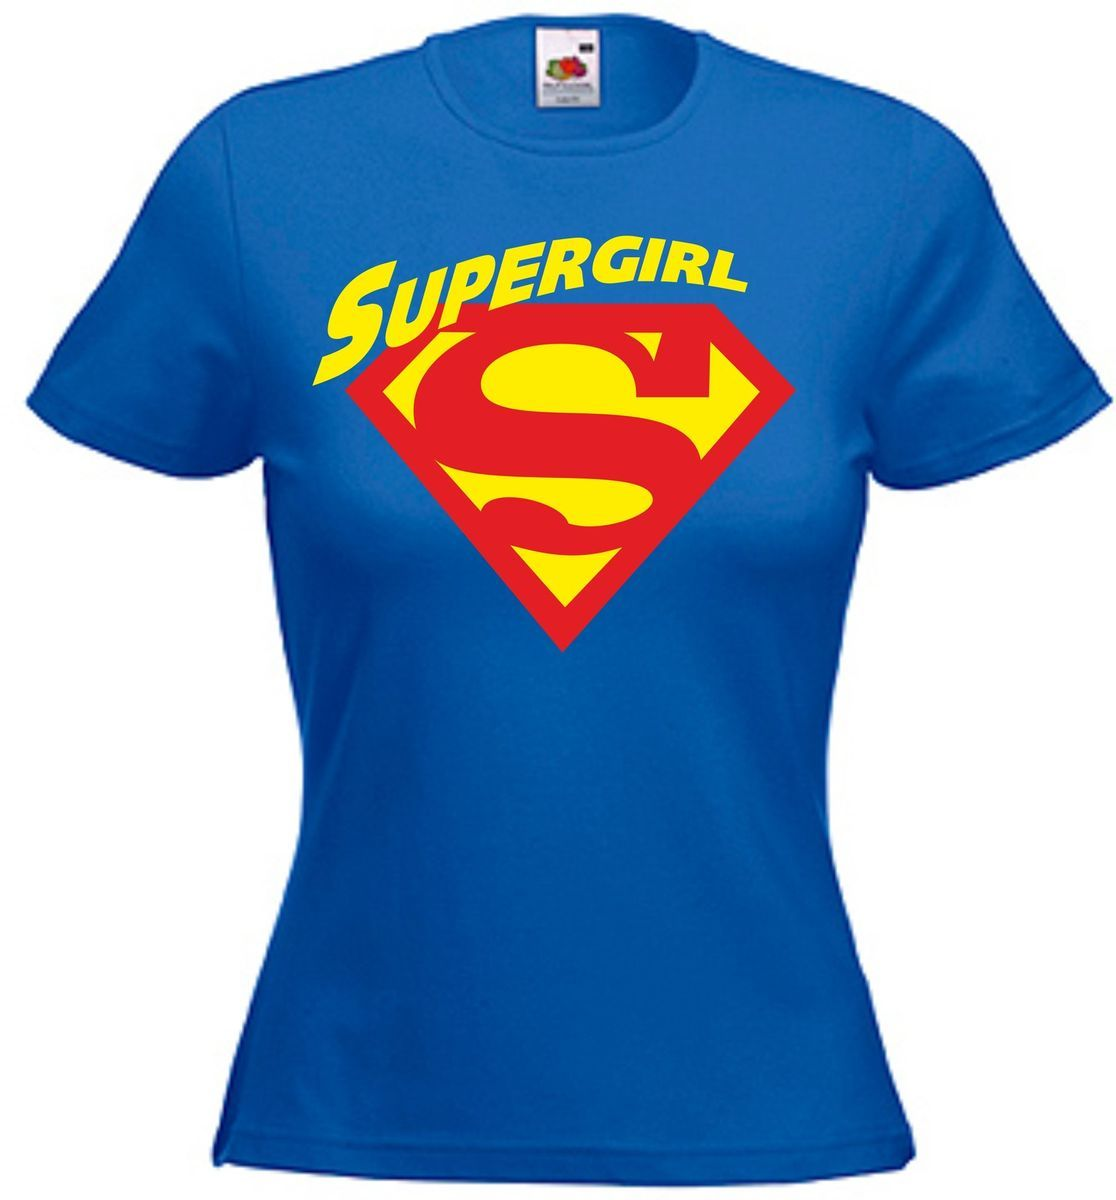 superman supergirl t shirt lady fit xs s m l xl f r damen. Black Bedroom Furniture Sets. Home Design Ideas